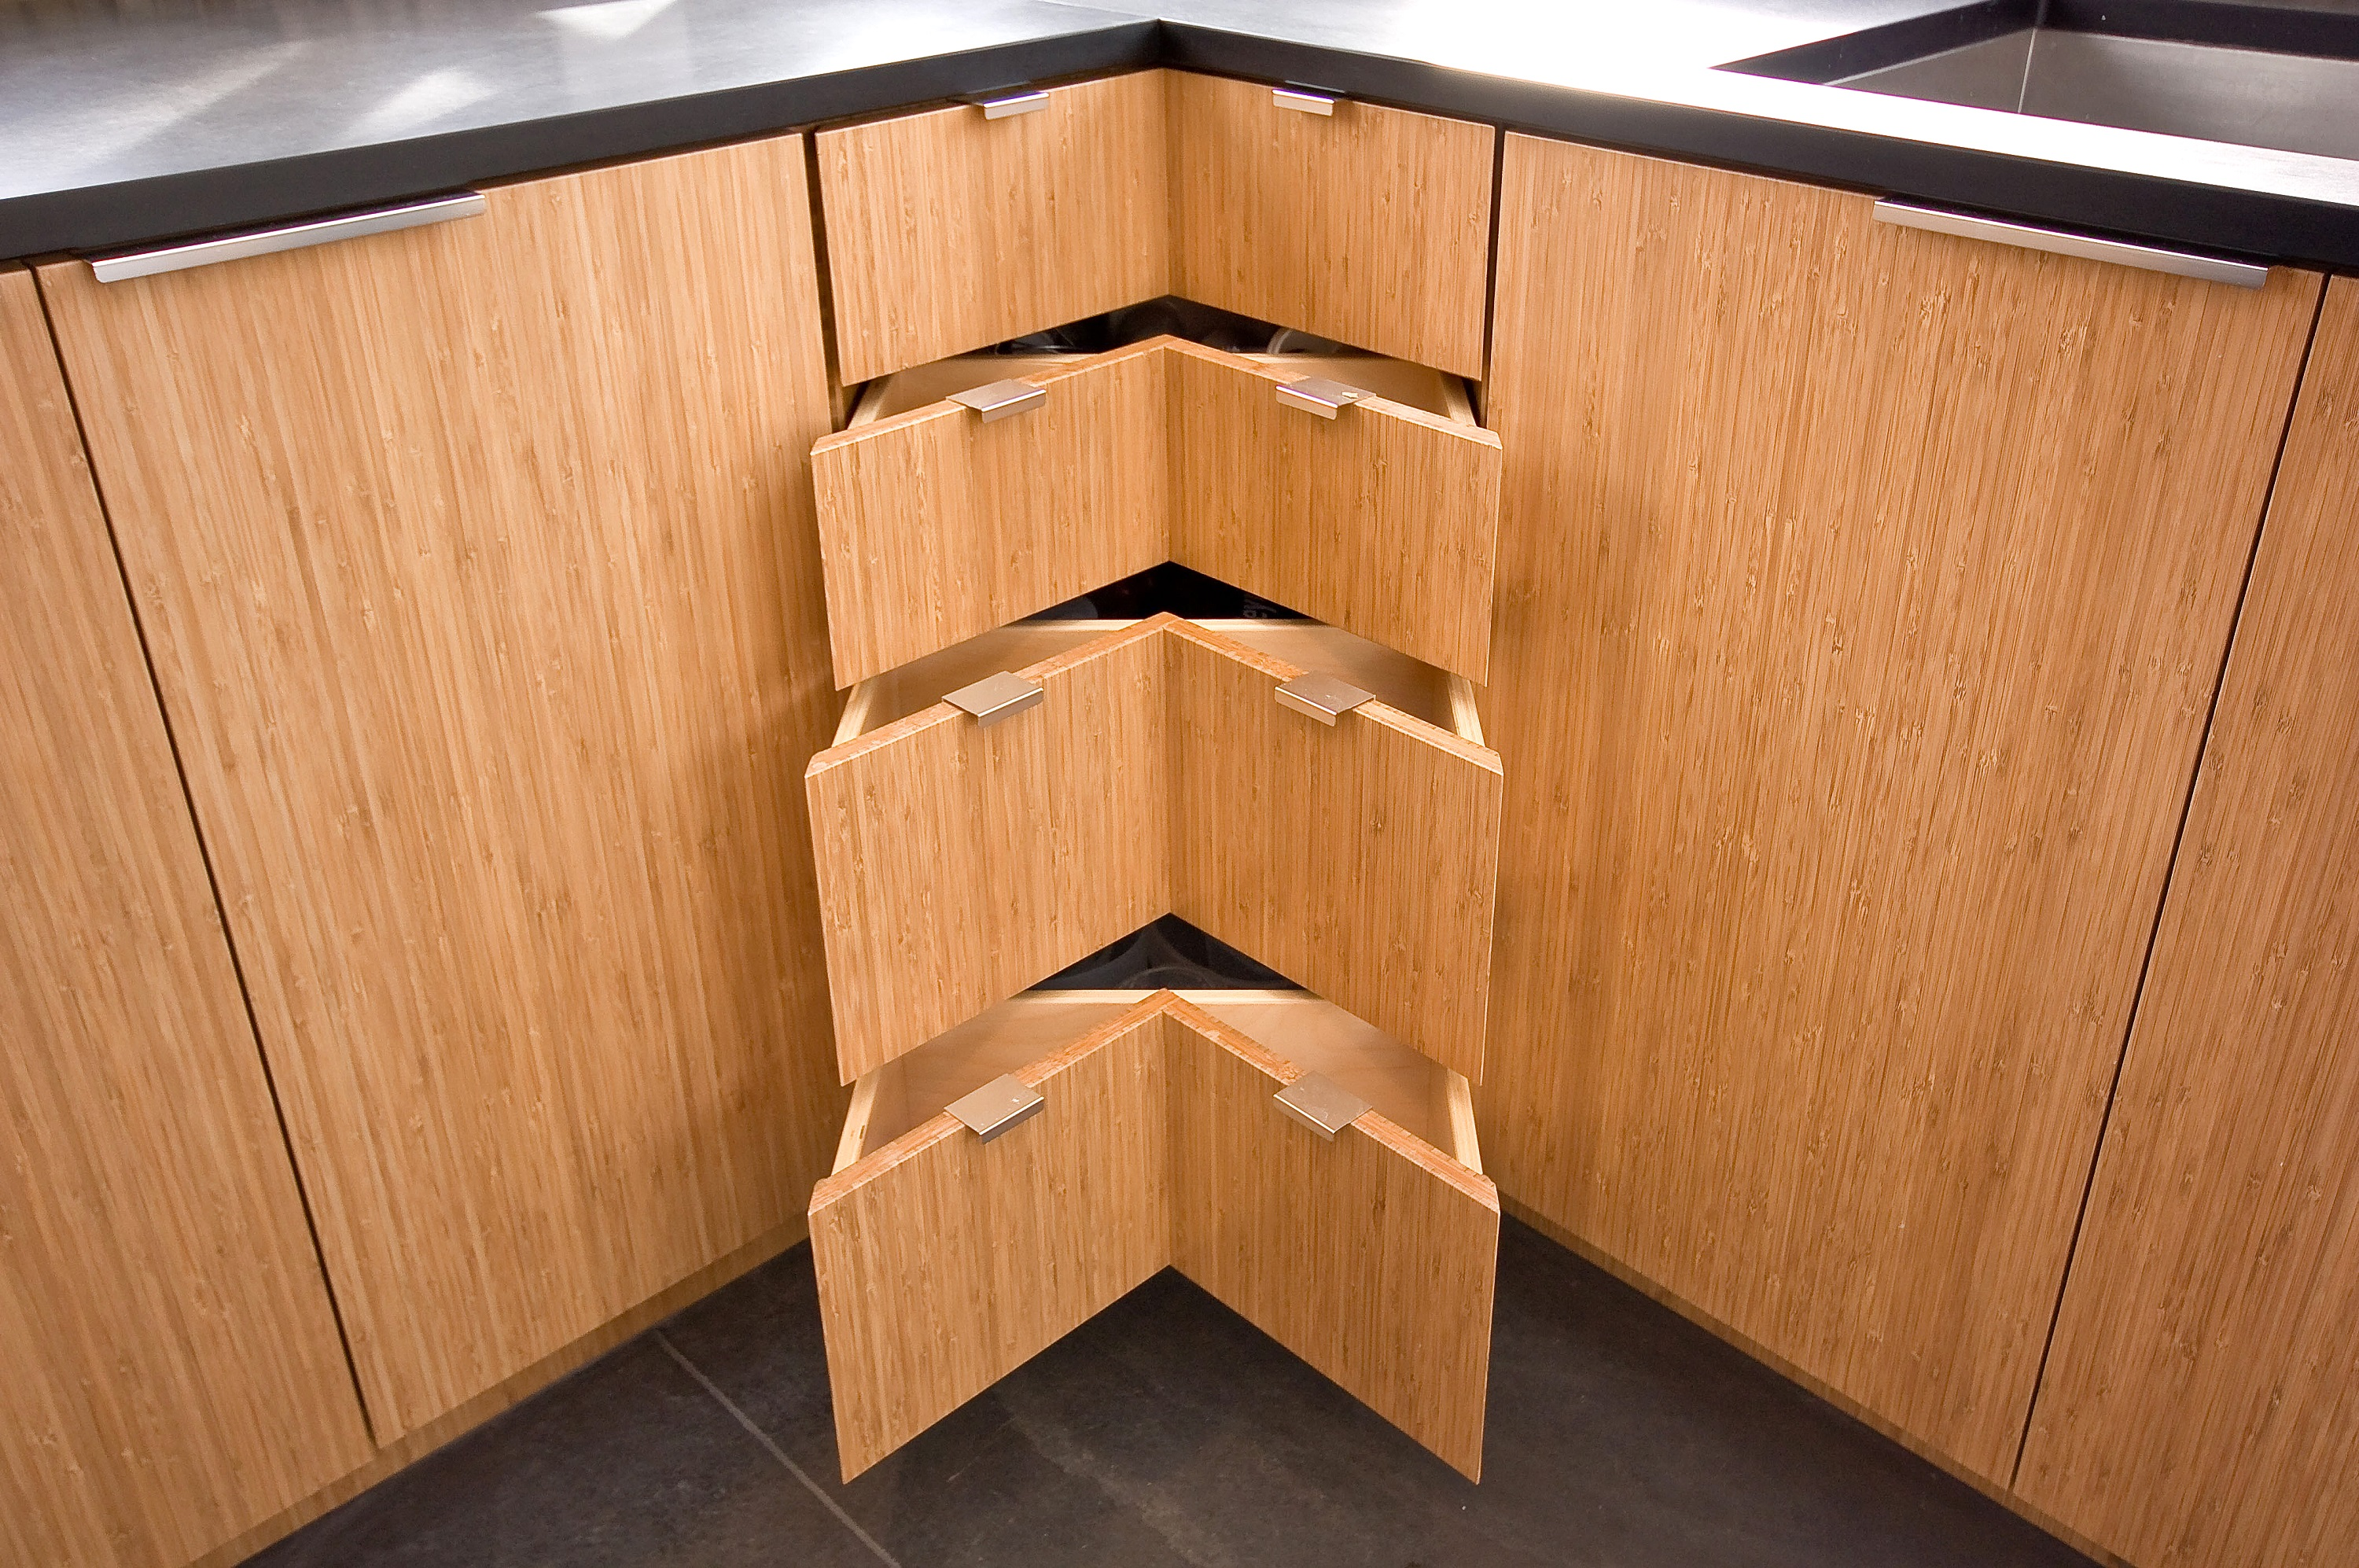 Bamboo-Natural-Shelves-Residential-Kitchen-Drawers